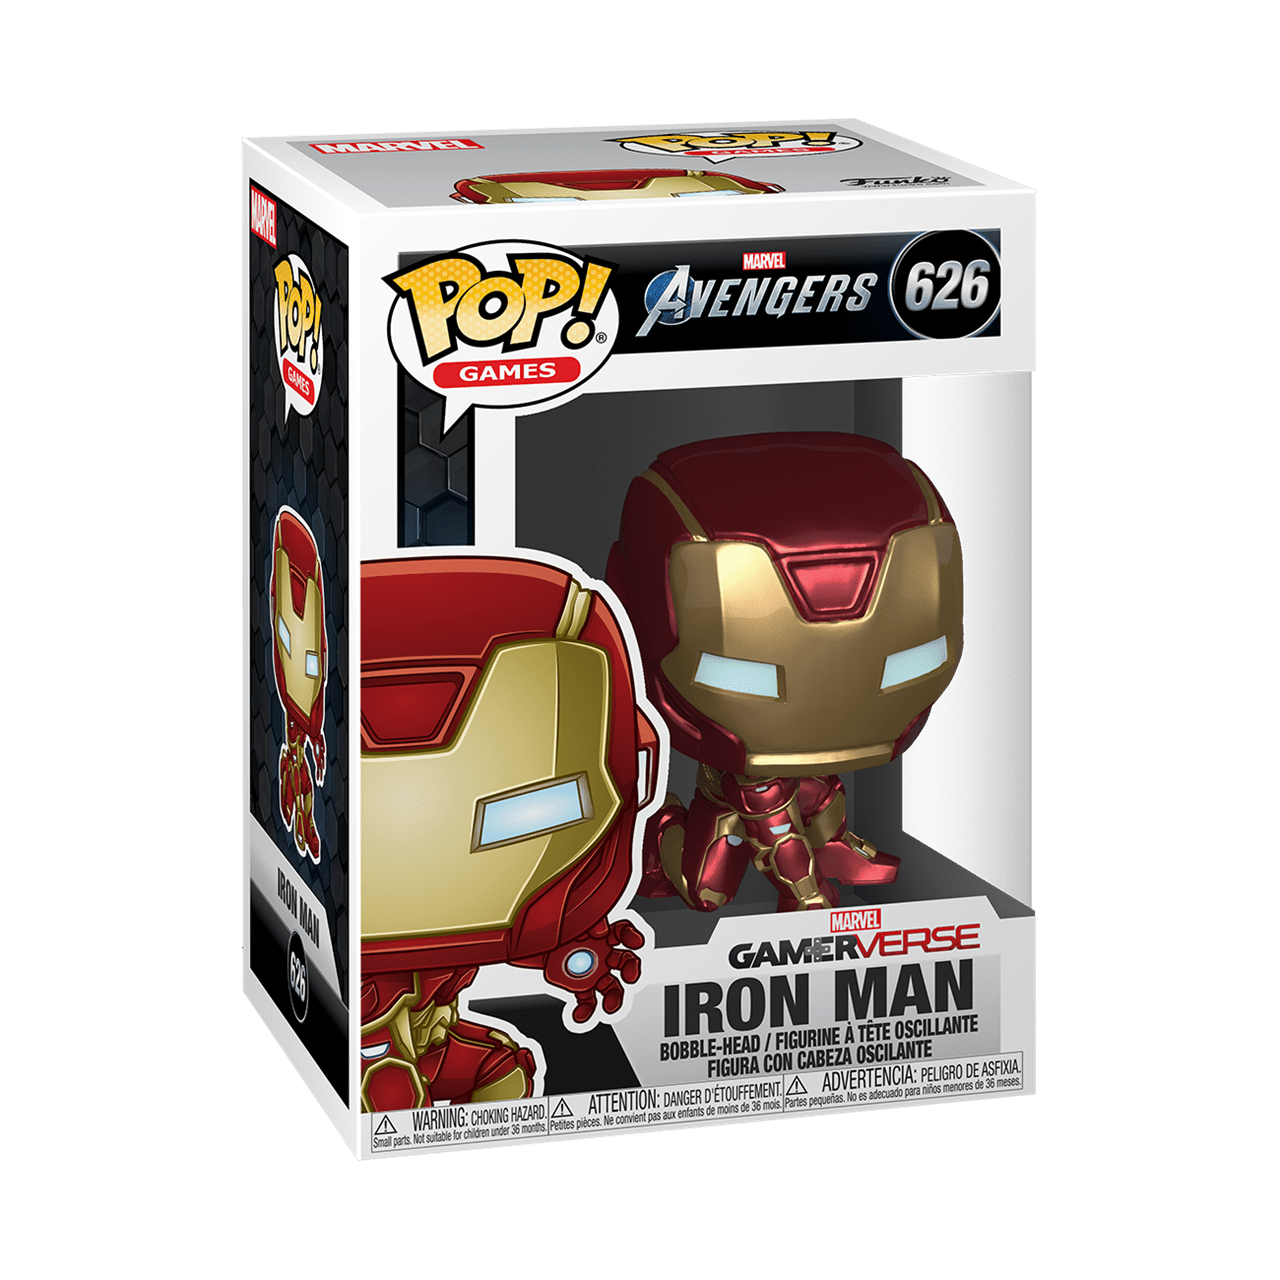 Iron Man (626) Avengers Gamerverse Marvel Pop Vinyl - 2